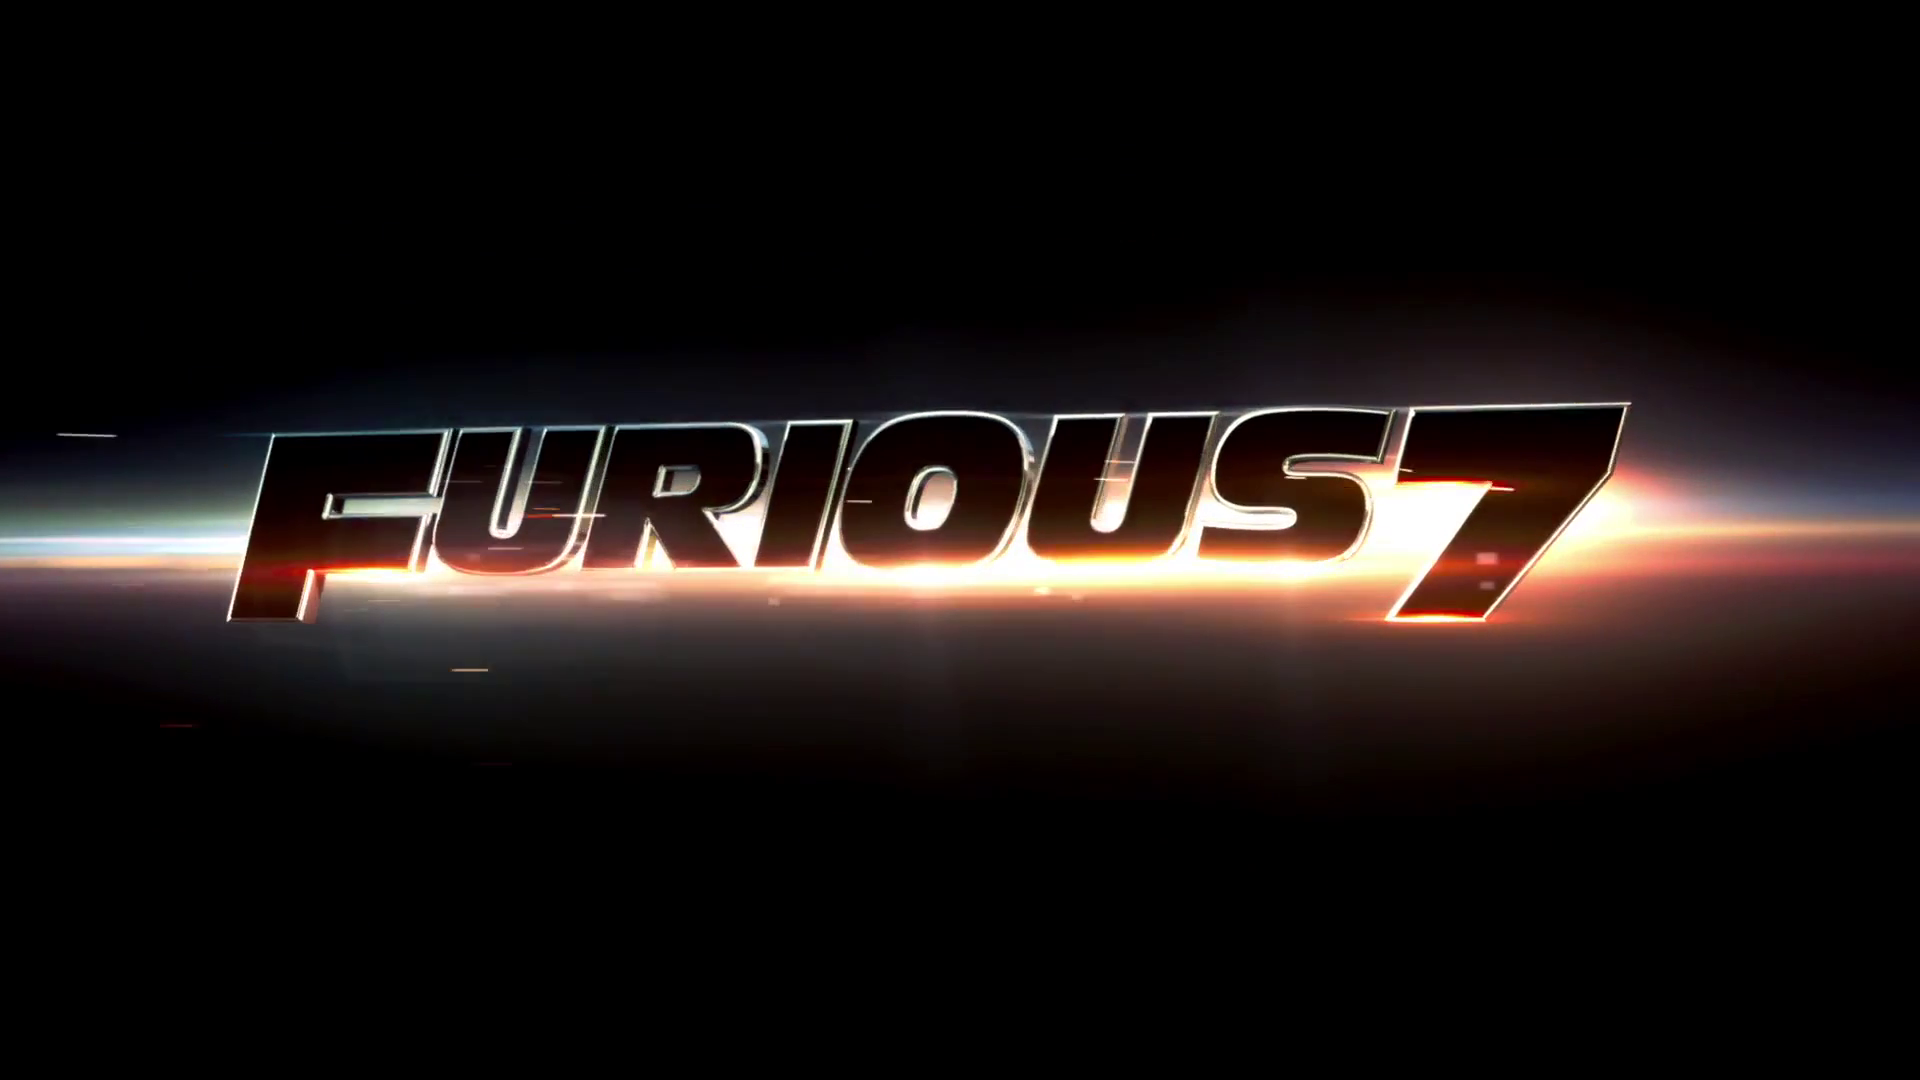 37 Fast And Furious 7 Hd Wallpapers   ImgHD Browse and Download 1920x1080